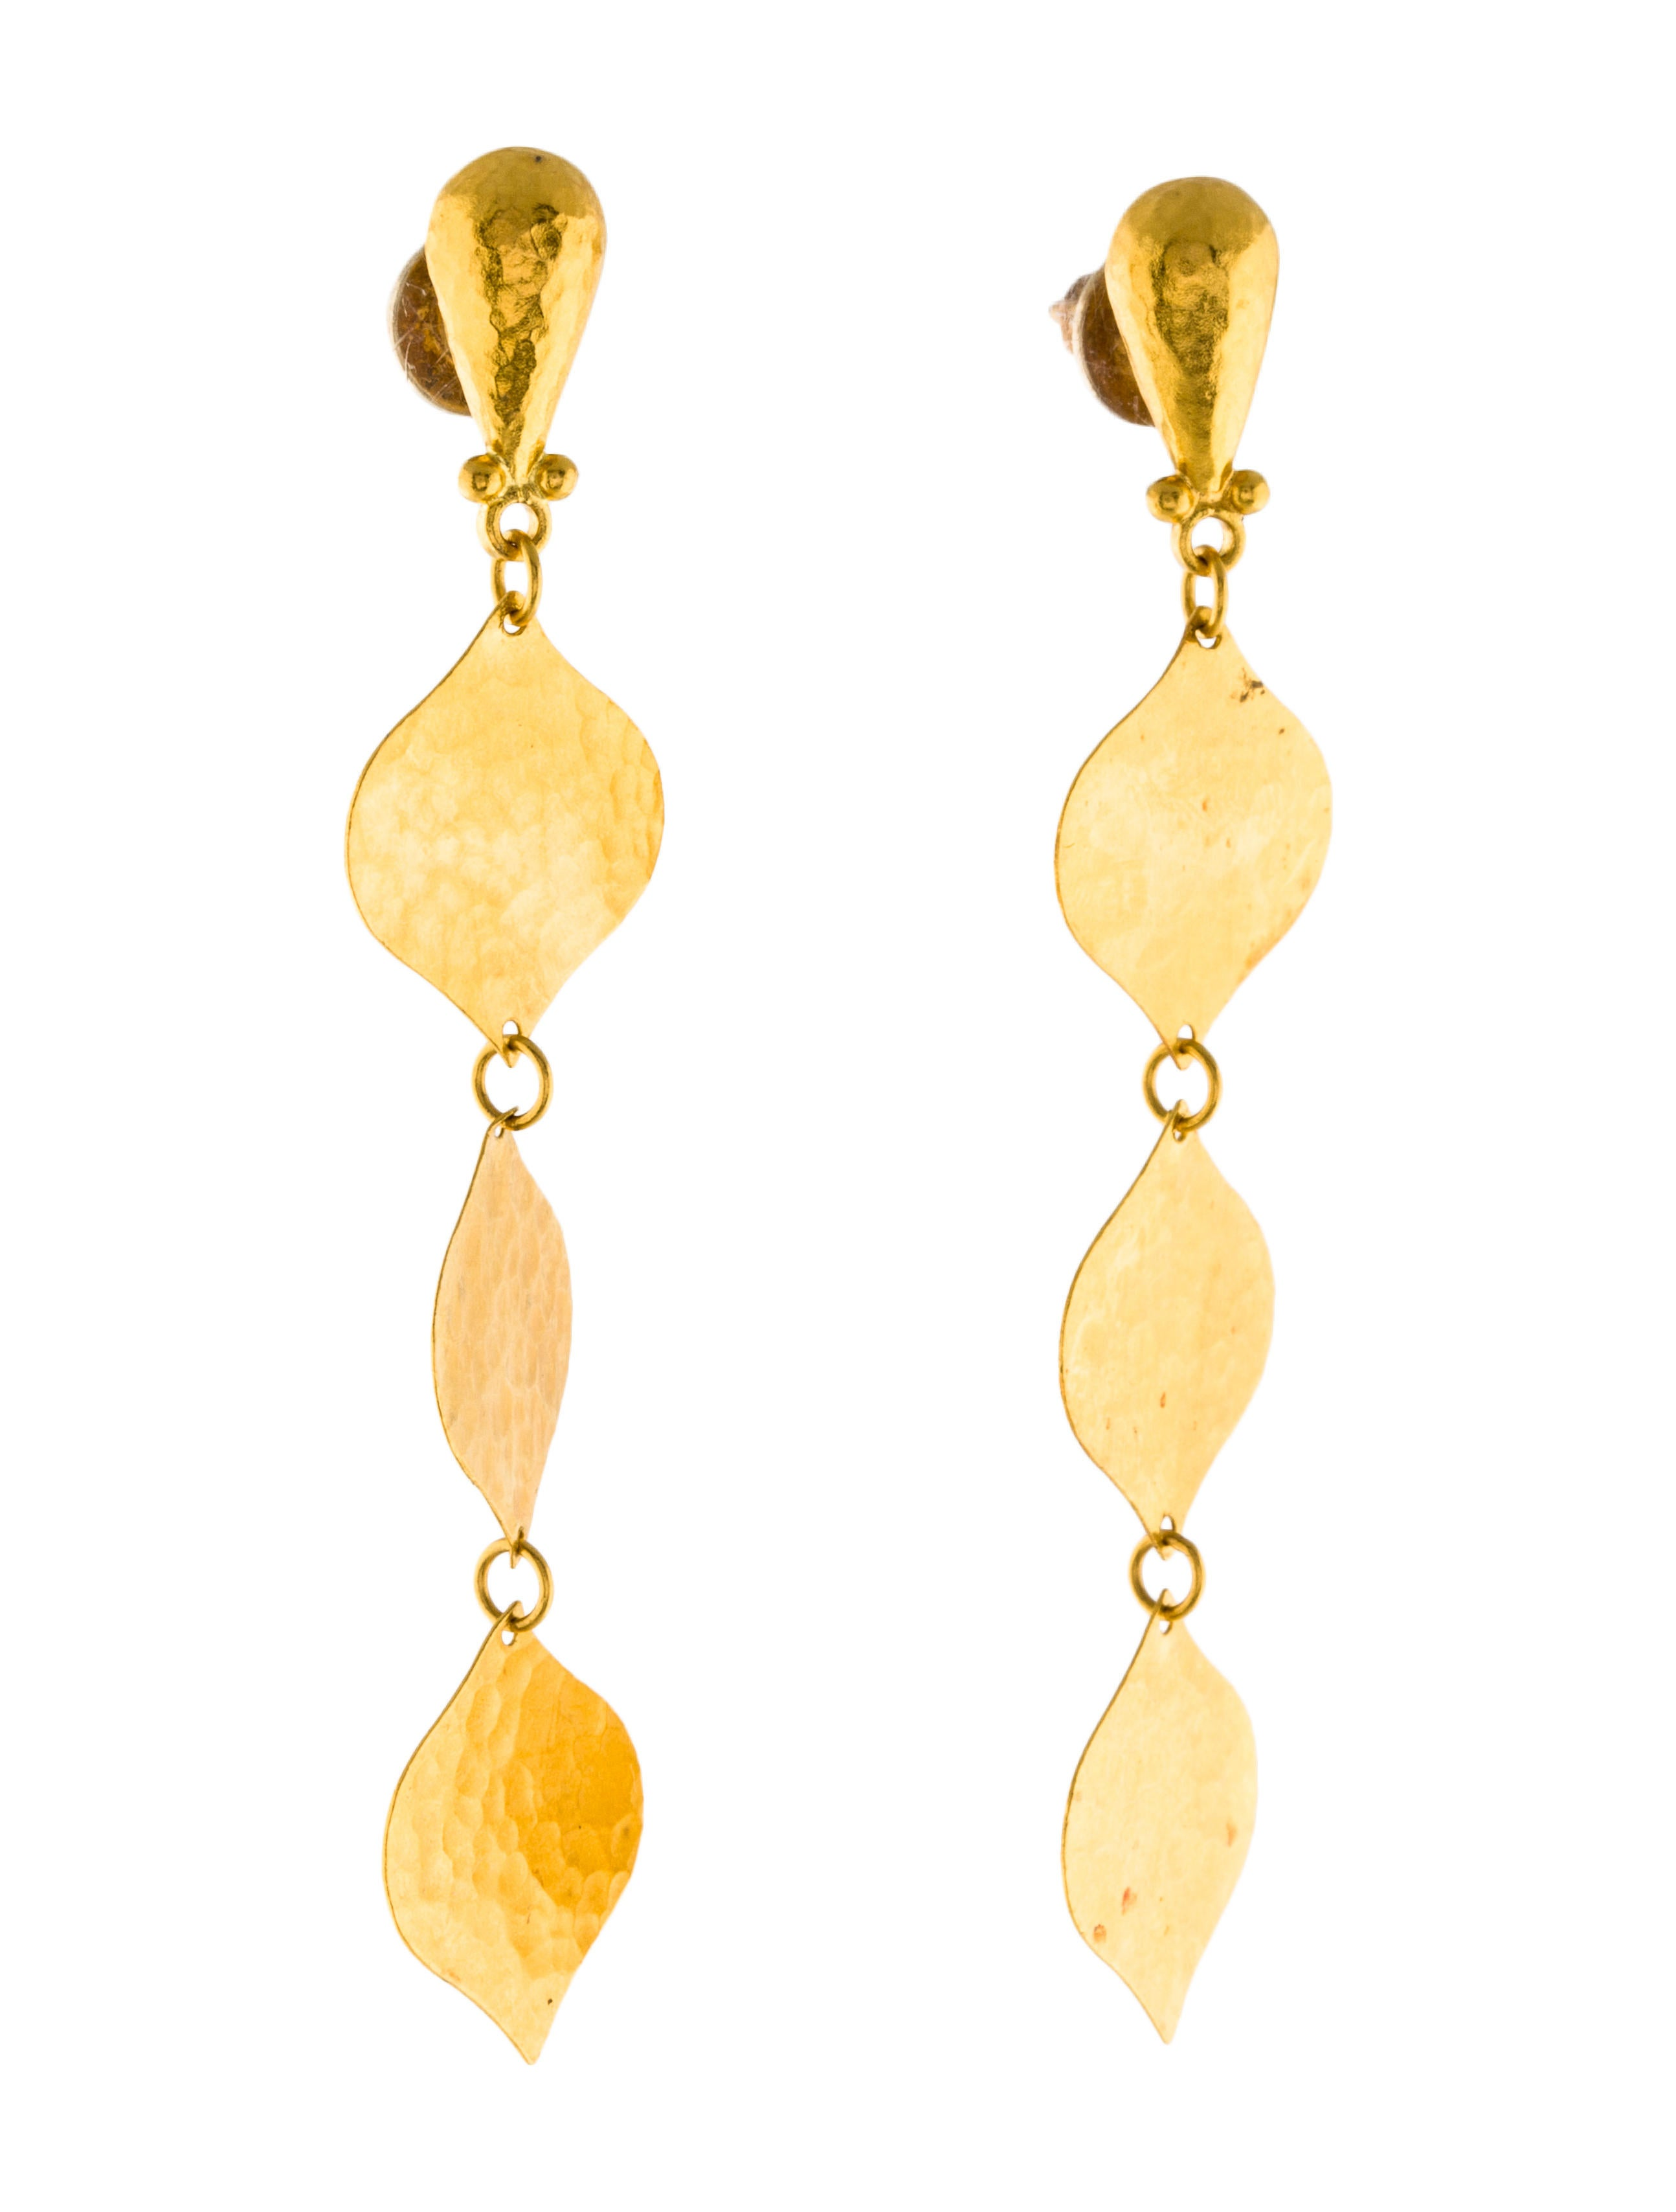 Gurhan 24k Triple-Drop Clove Flake Earrings wlat3U50